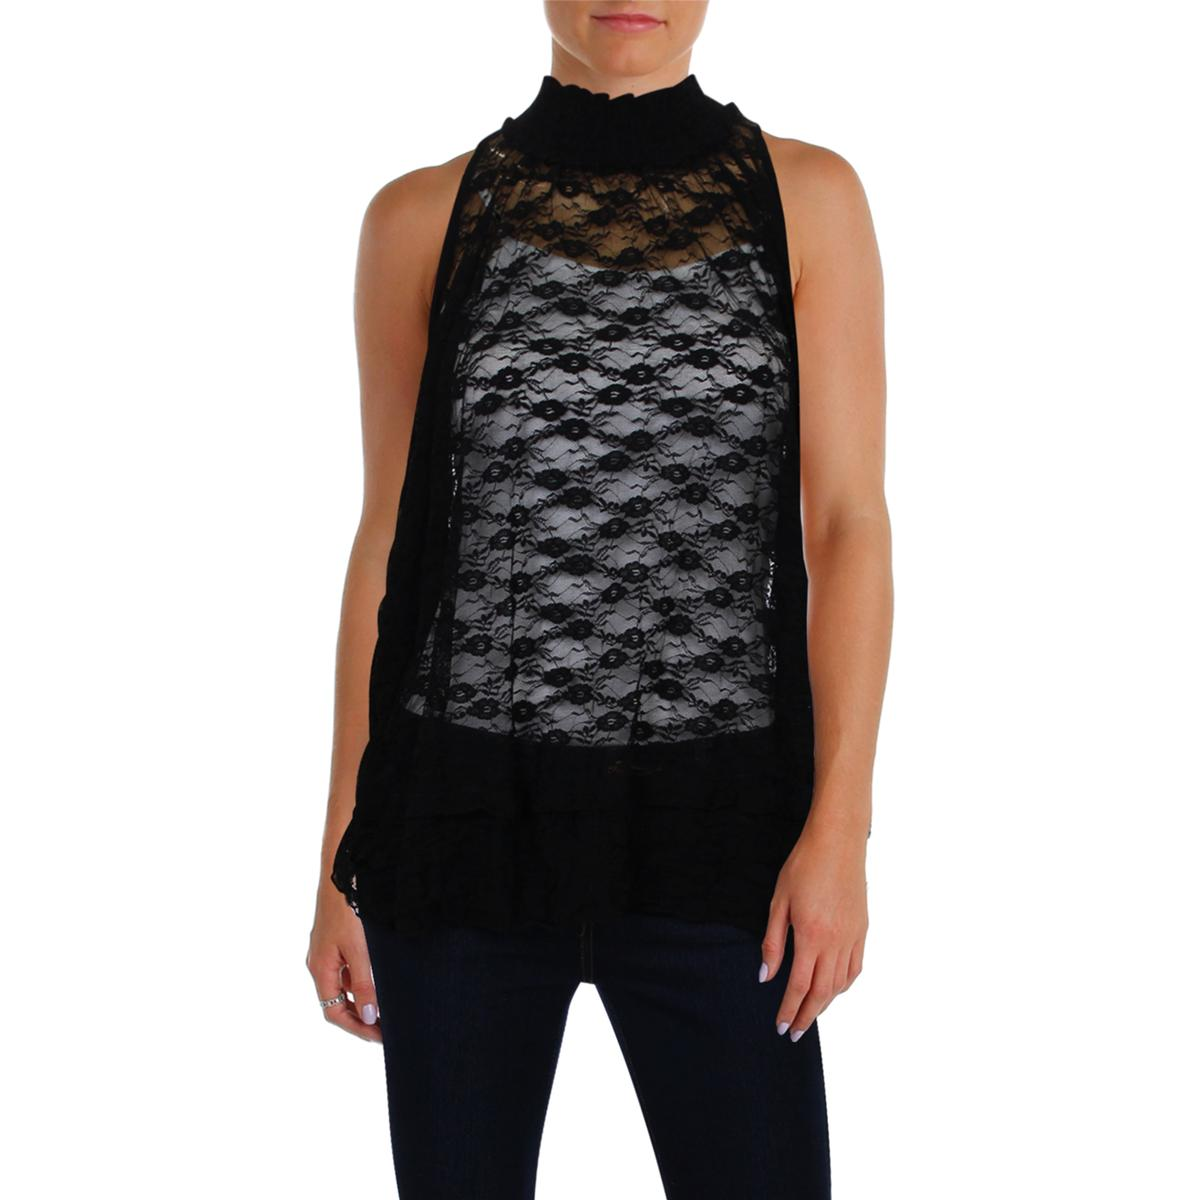 d3b6eb4e990b Details about Free People Womens Black Lace Sleeveless Party Turtleneck Top  Blouse S BHFO 9258